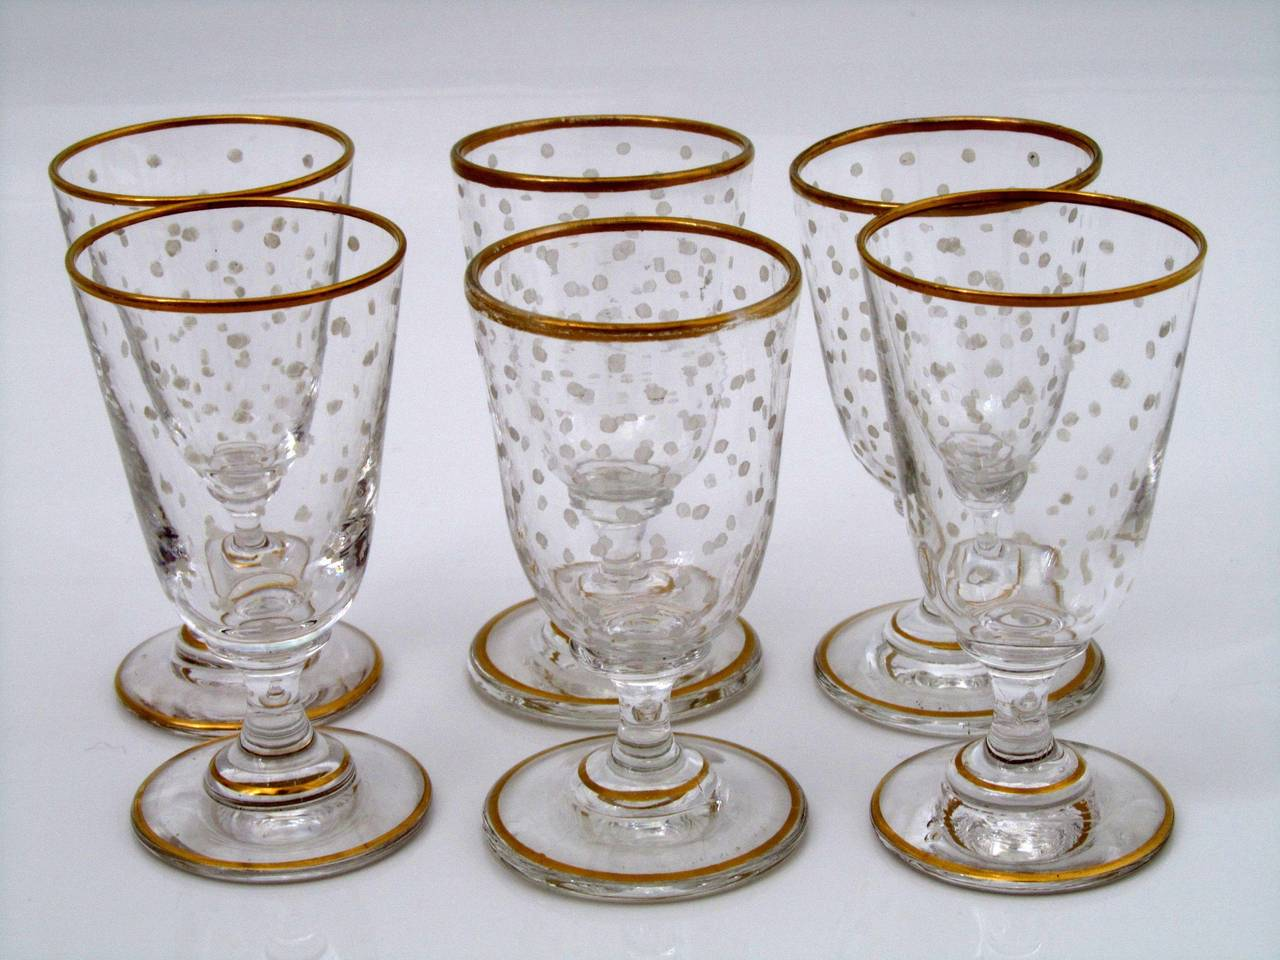 1870s french gold enamel crystal baccarat liquor or aperitif service 8 pc for sale at 1stdibs. Black Bedroom Furniture Sets. Home Design Ideas